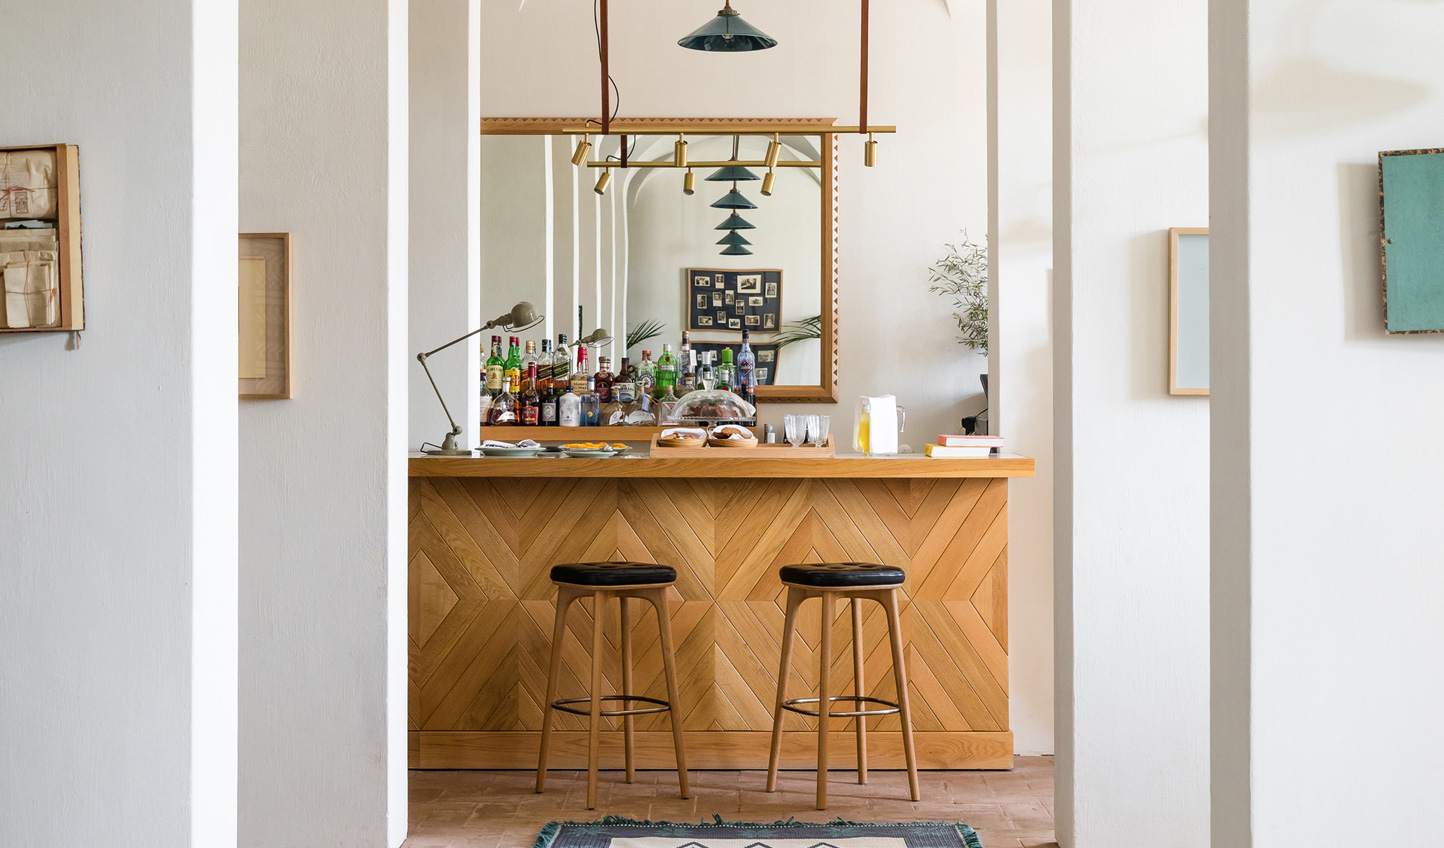 Pull up a stool and savour creative concoctions